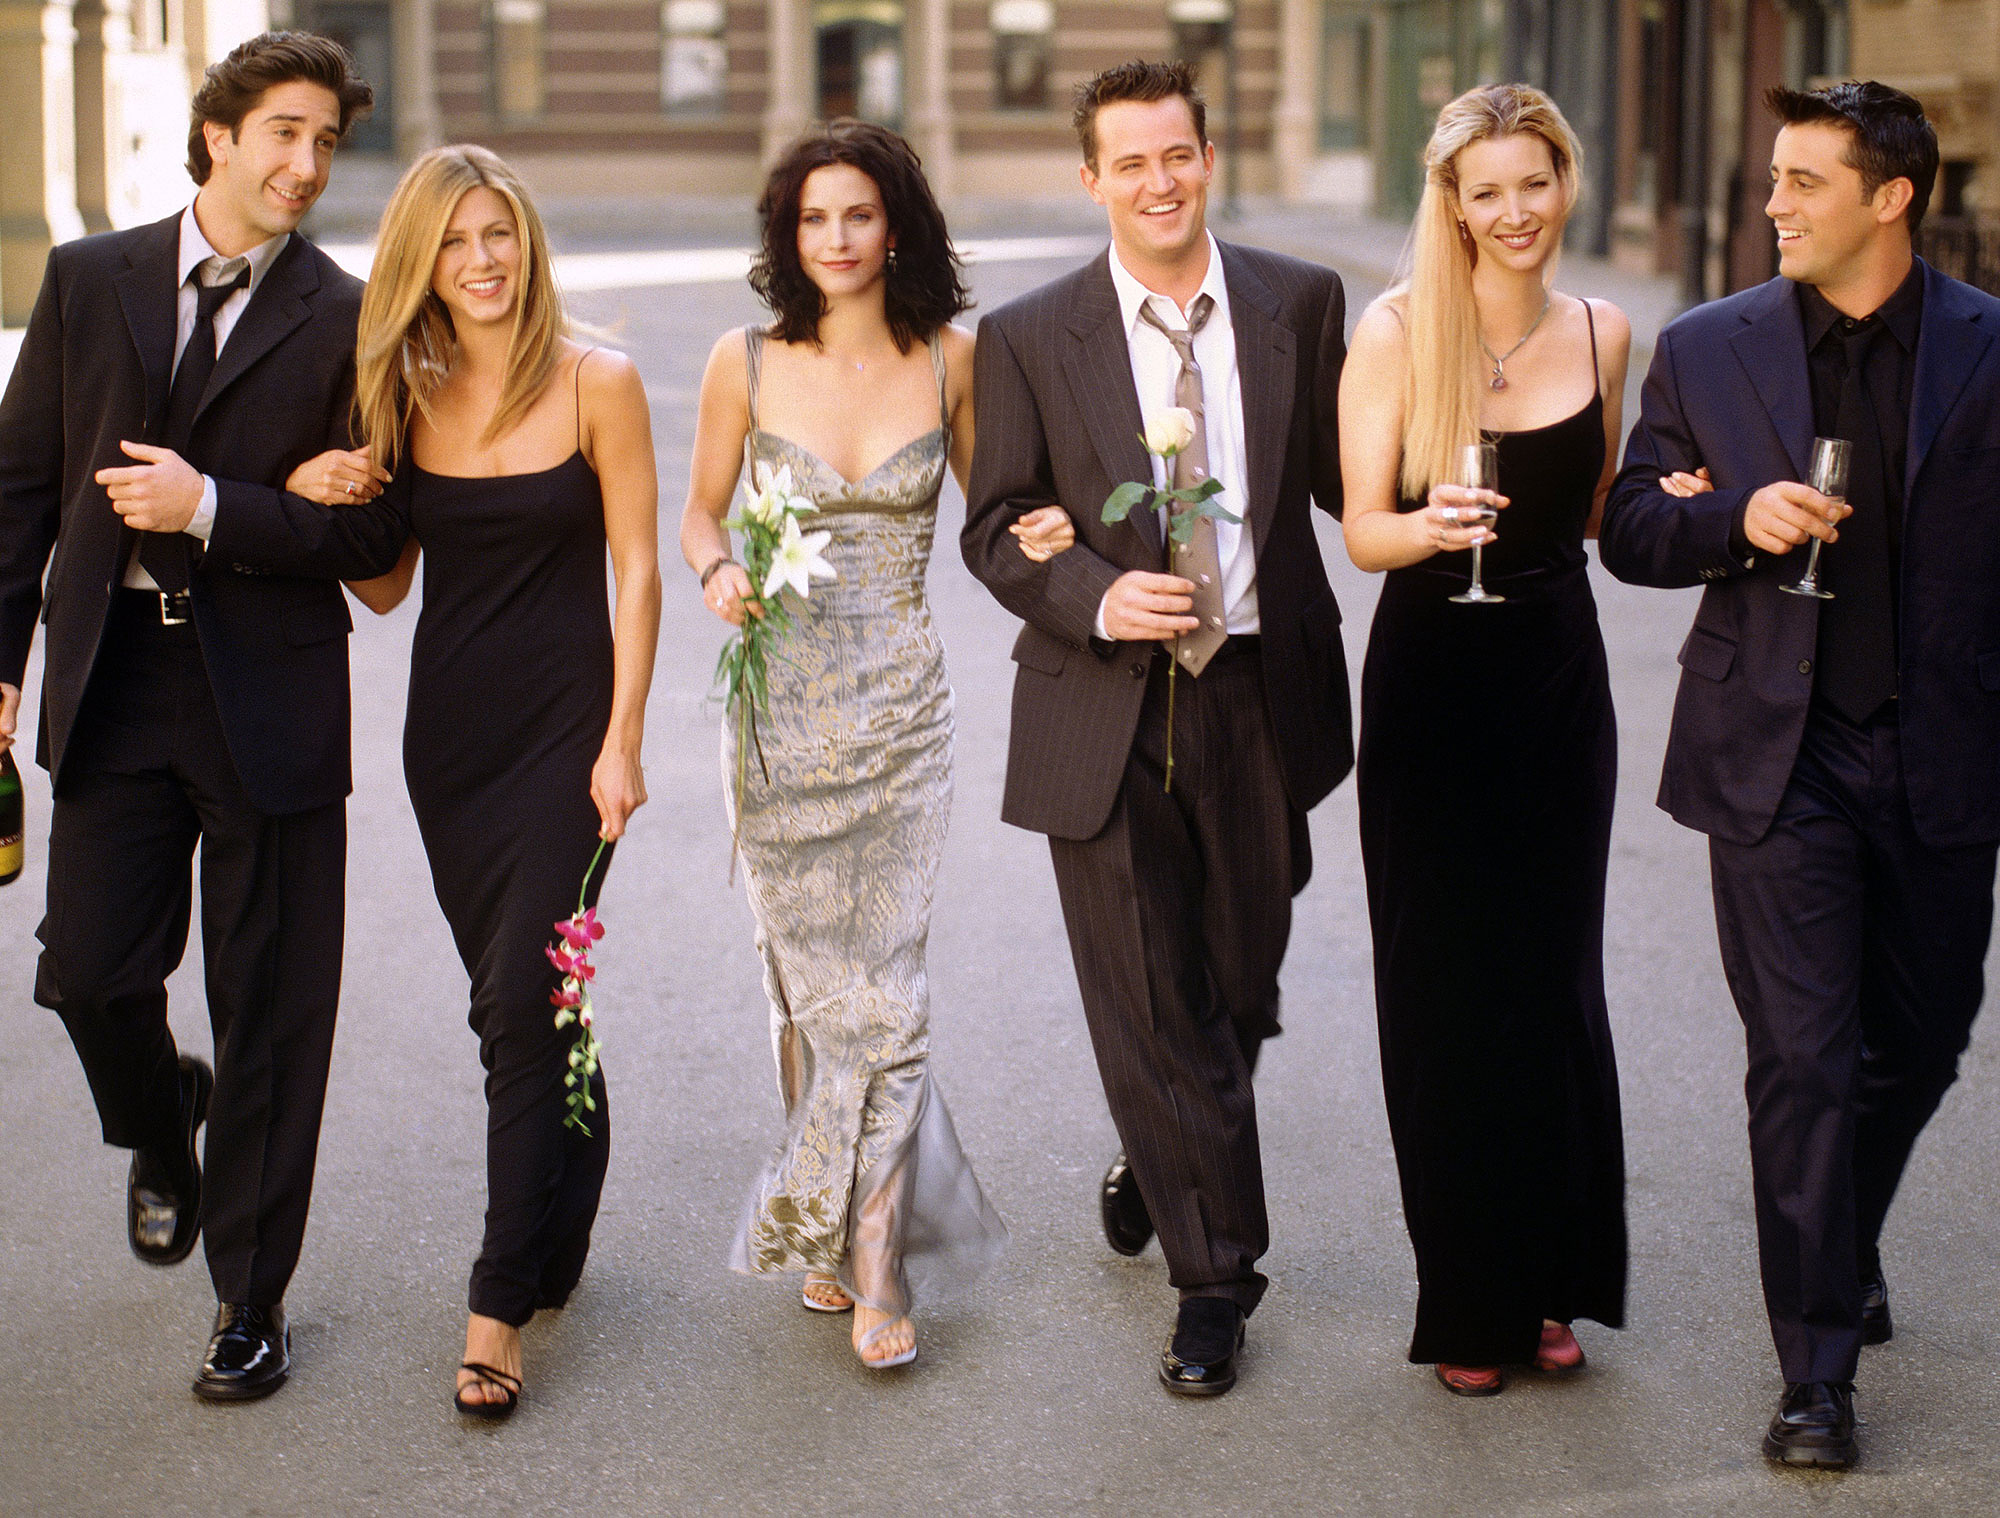 How-Many-Times-Has-the-'Friends'-Cast-Has-Reunited-Since-the-Series-Ended